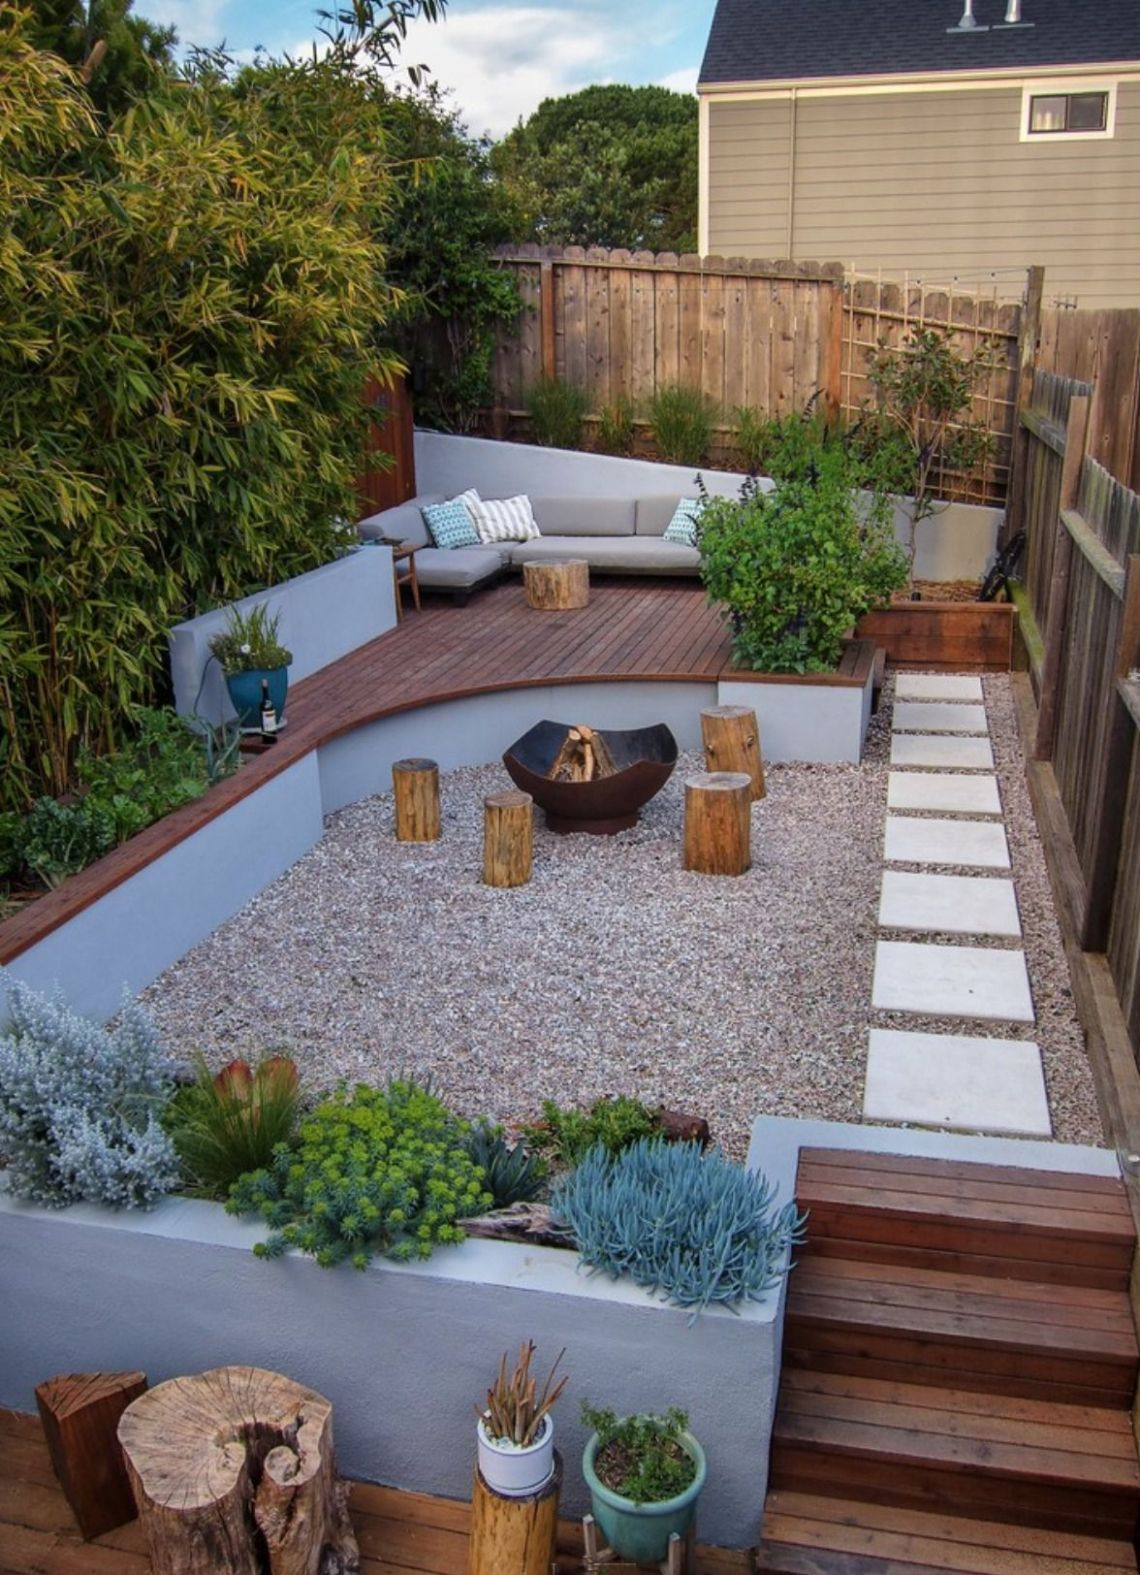 9 Some of the Coolest Ideas How to Improve Backyard Remodel Ideas ..